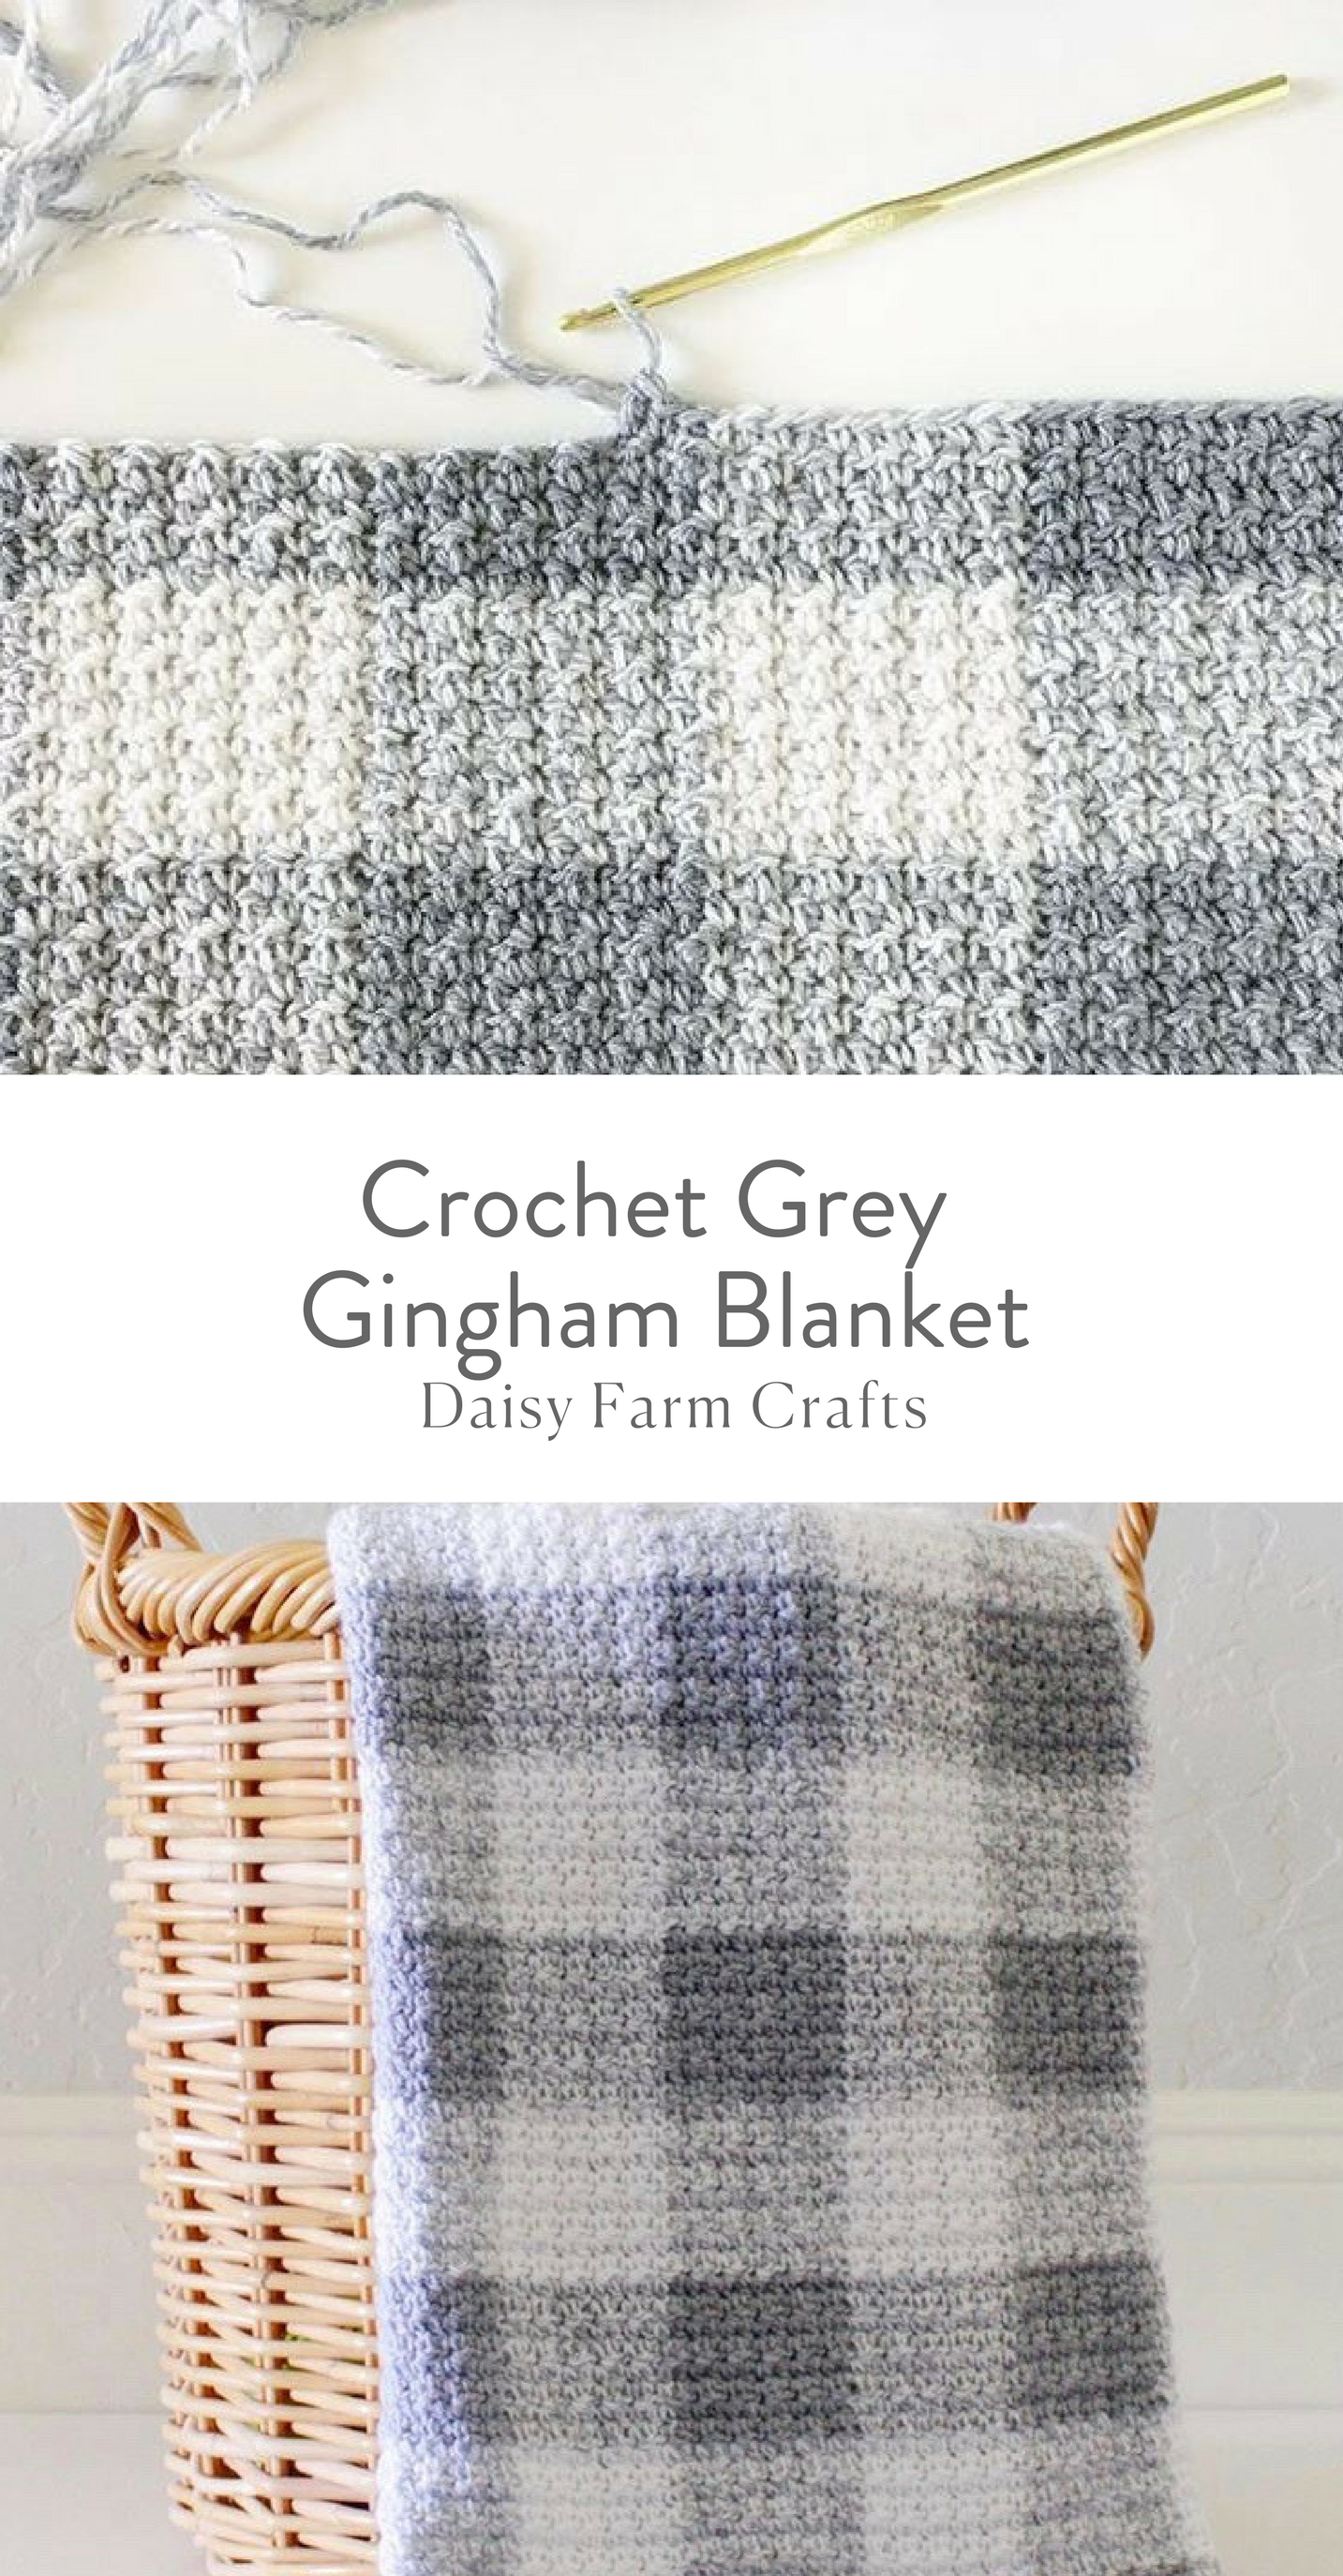 Free Pattern - Crochet Grey Gingham Blanket | ganxillo | Pinterest ...